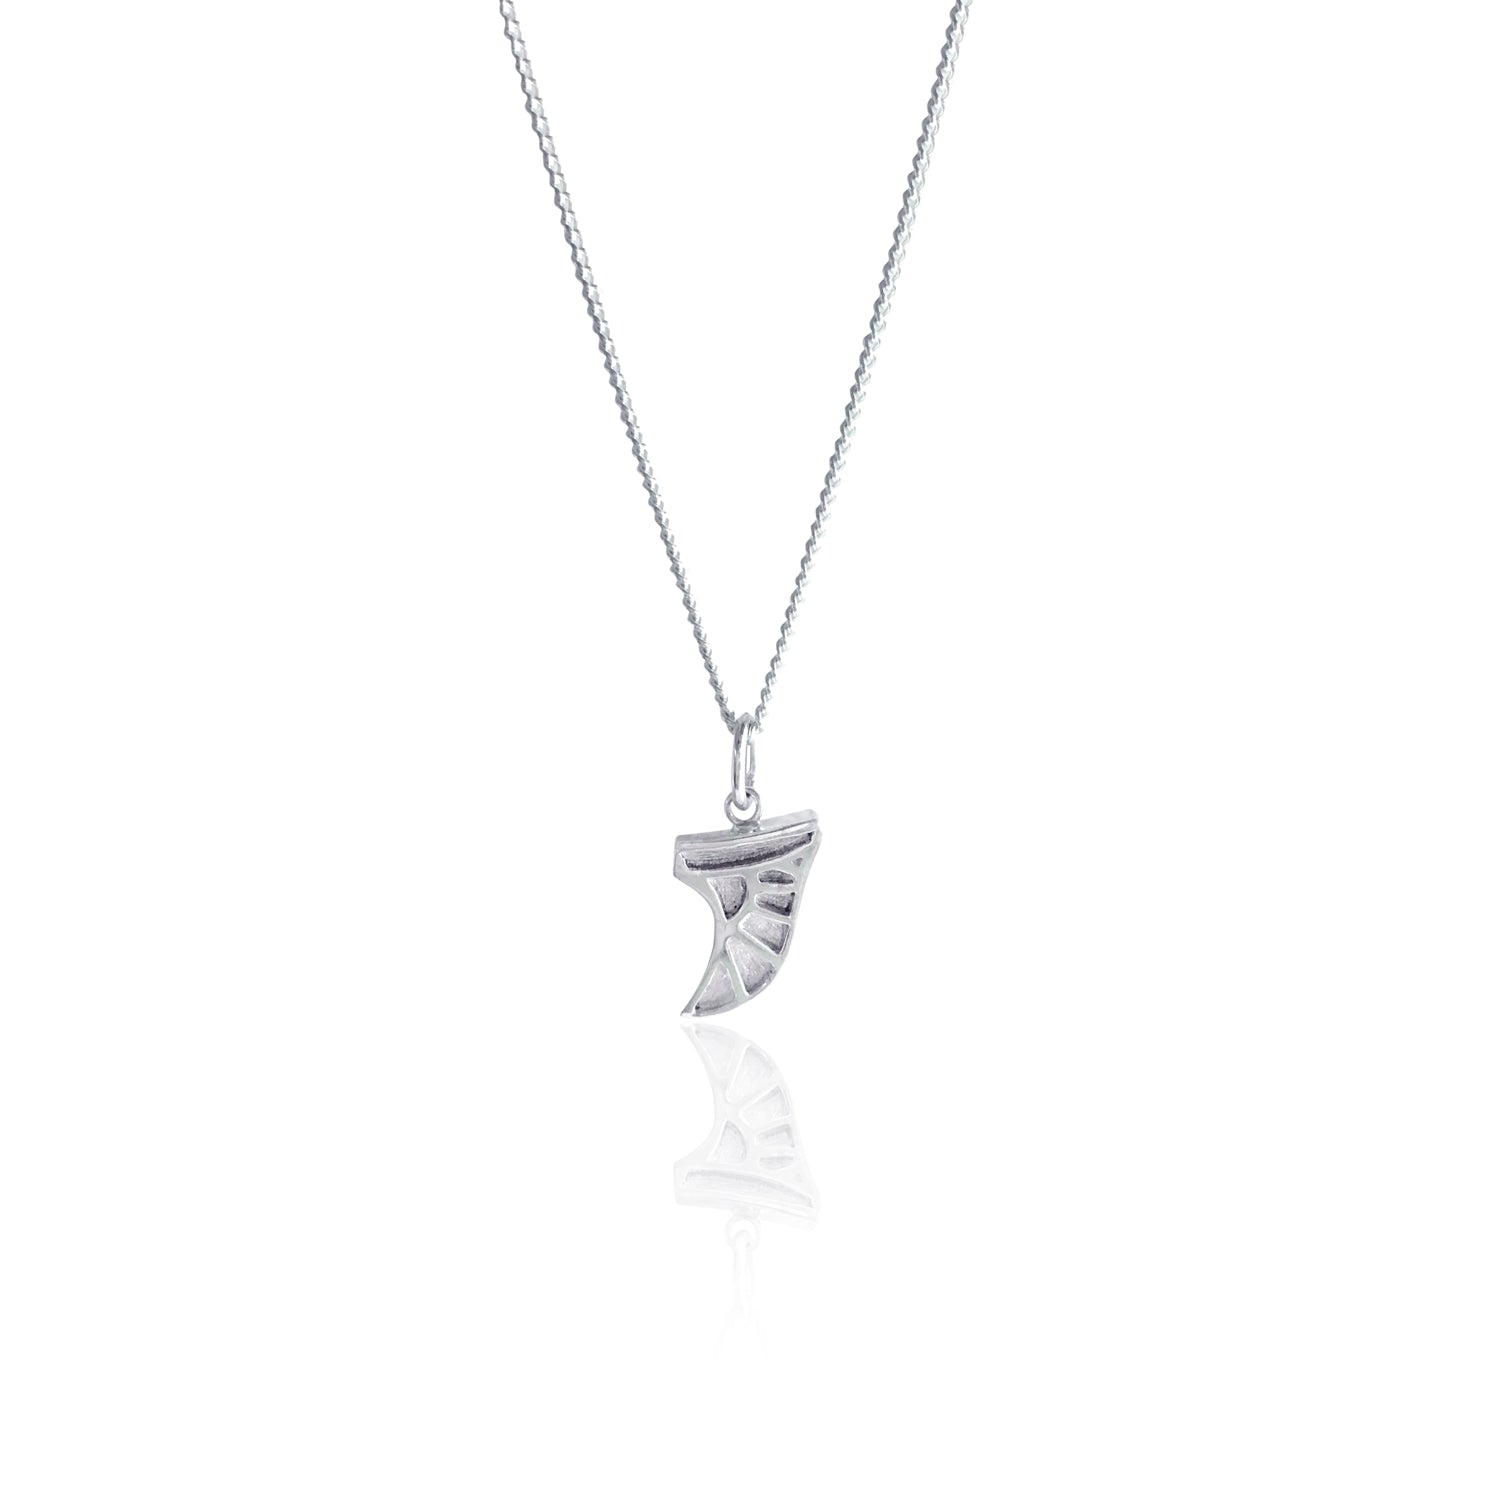 GOLDFISH KISS x LUNA & ROSE SURF FIN NECKLACE (Silver)